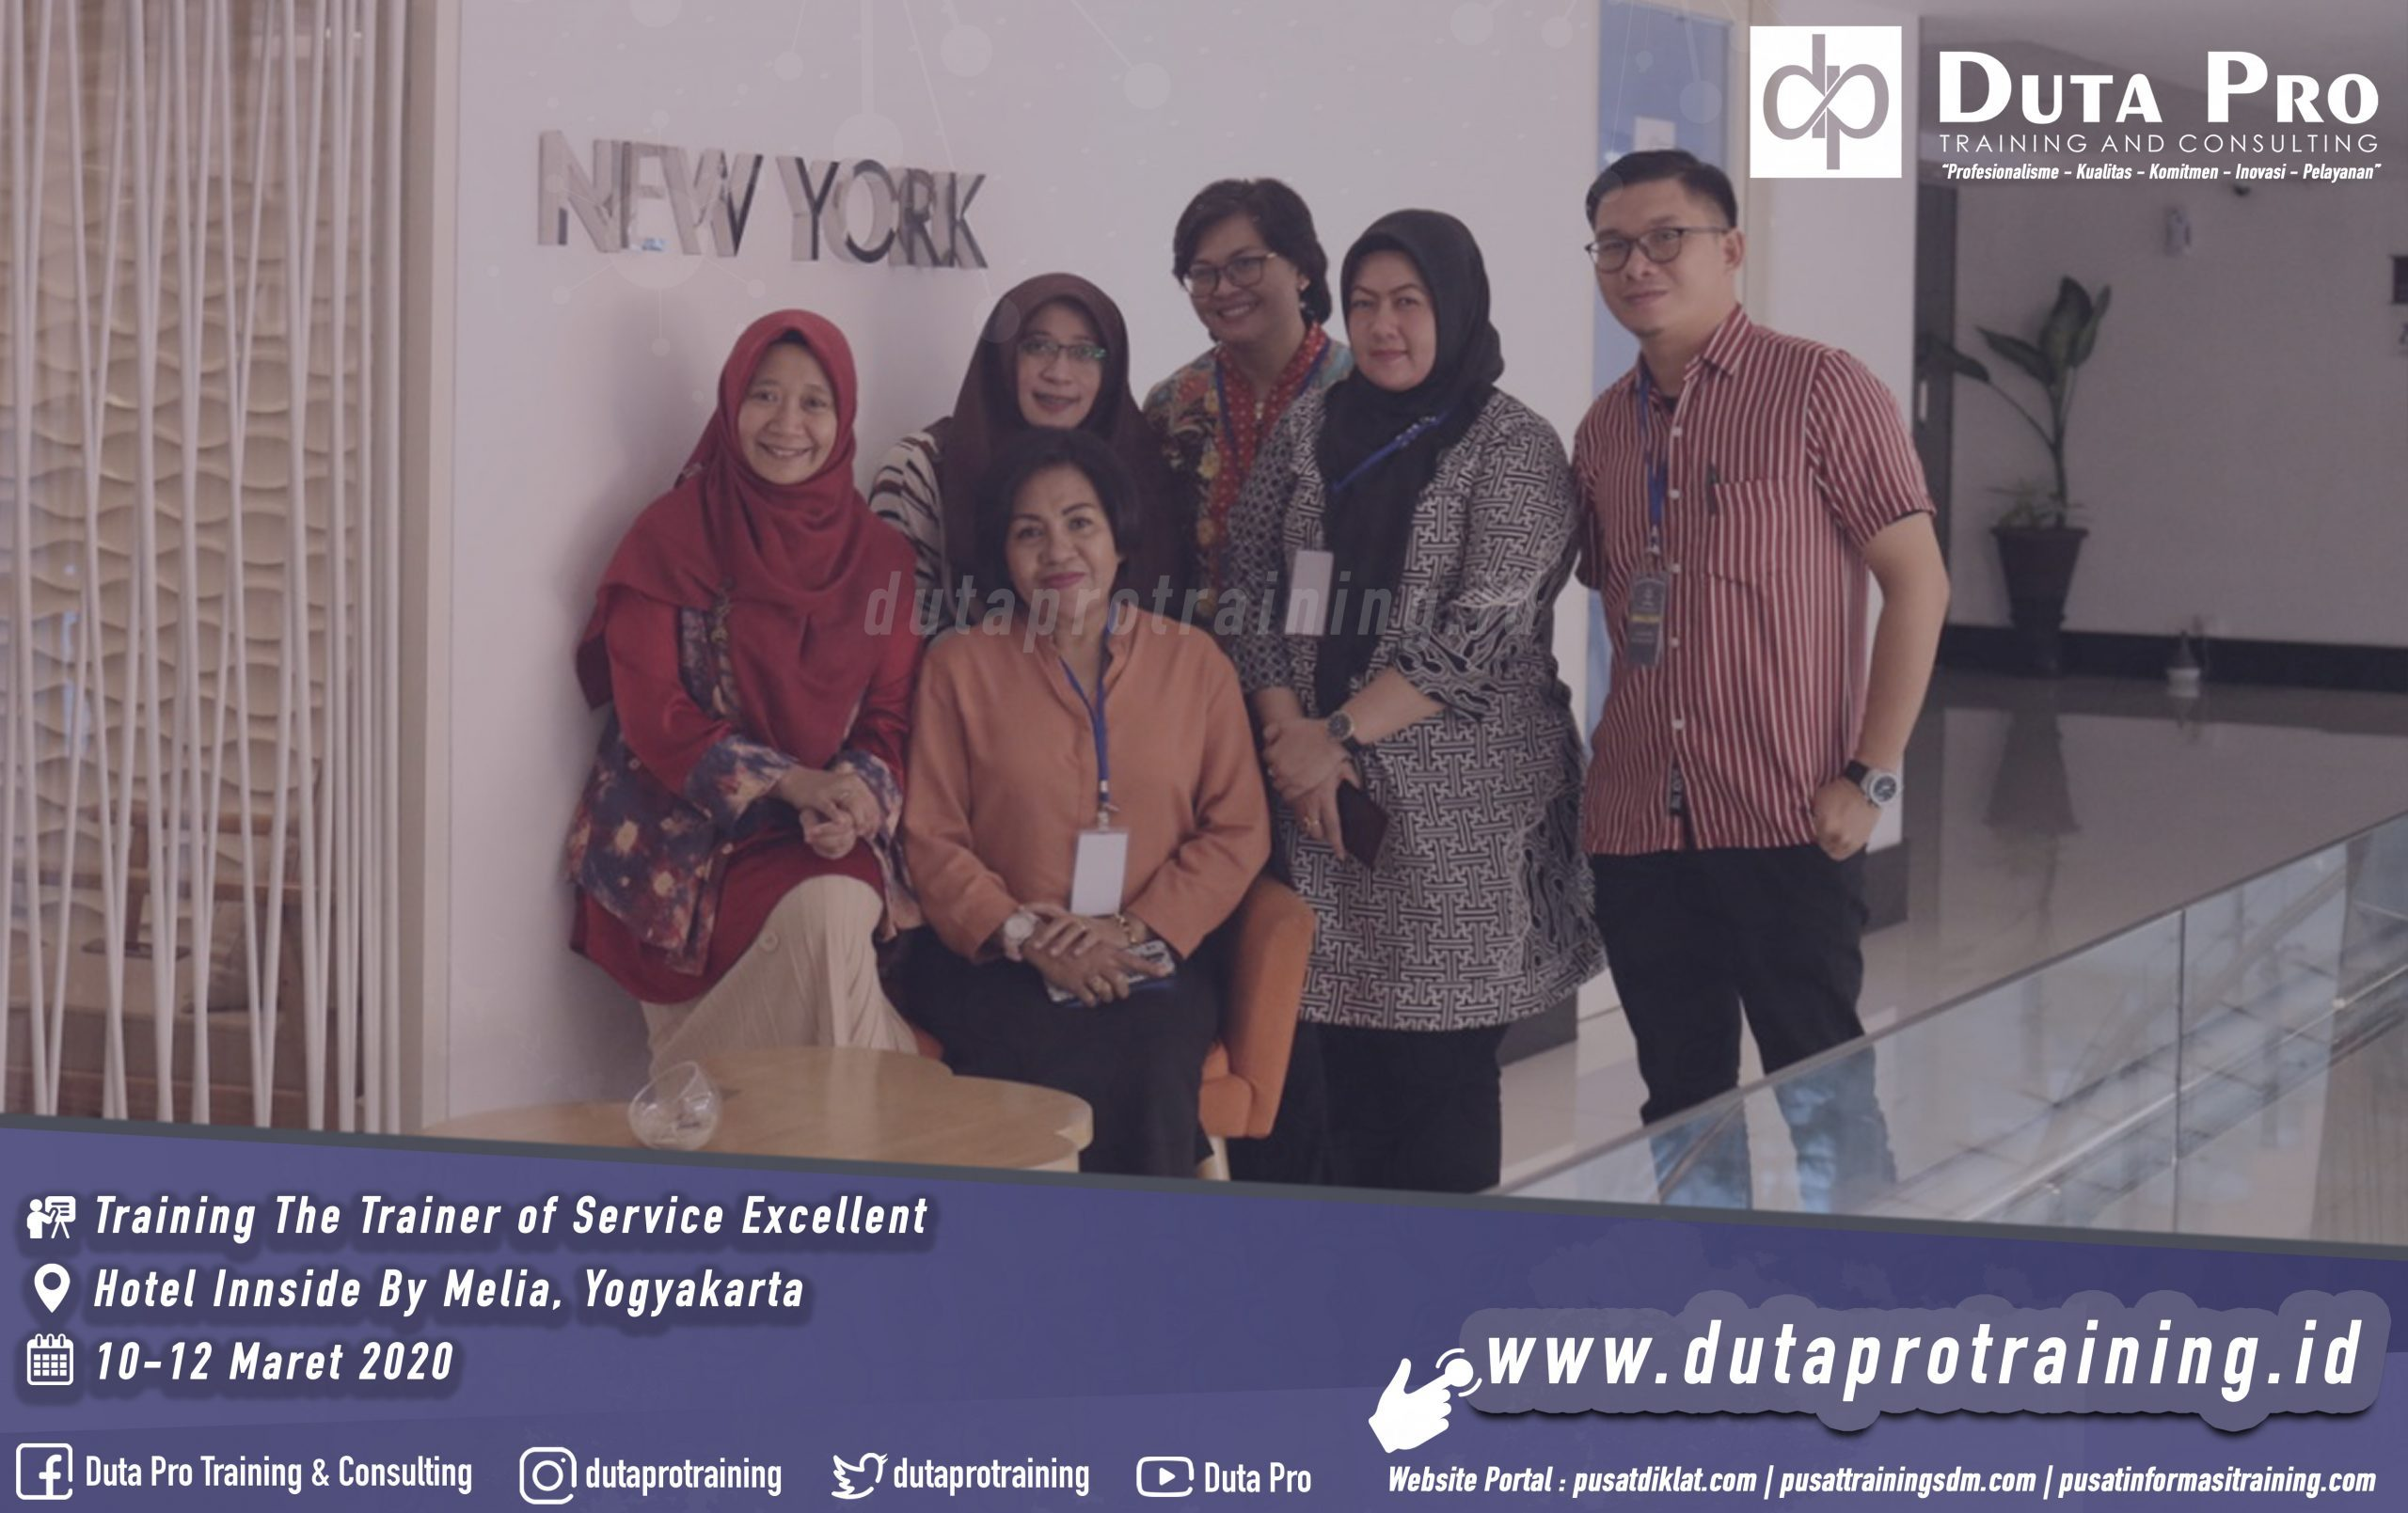 Training The Trainer of Service Excellent Hotel jogja duta pro. Galeri Website scaled 2559x1609 - Training Building Management